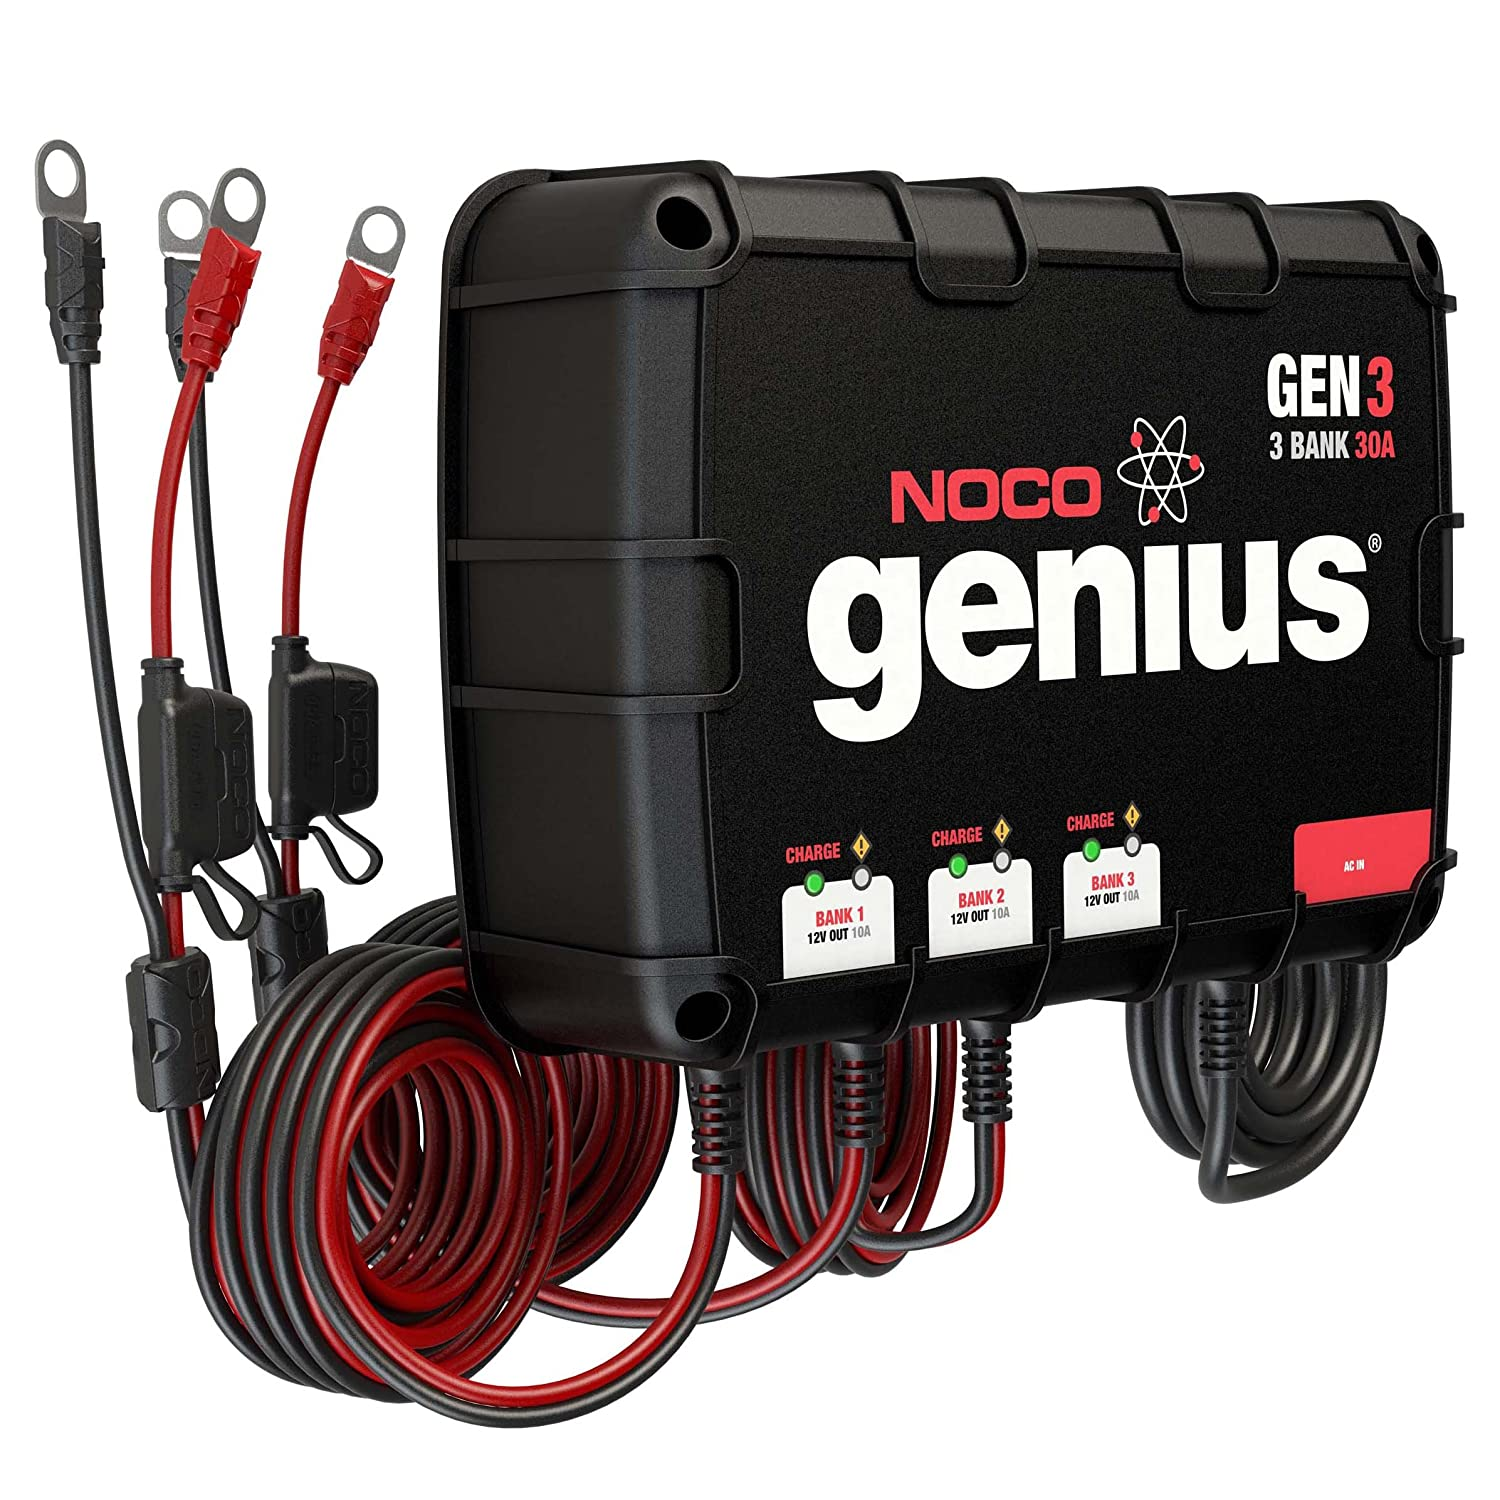 Amazon.com: NOCO Genius GEN3 30 Amp 3-Bank Waterproof Smart On-Board Battery  Charger: Automotive